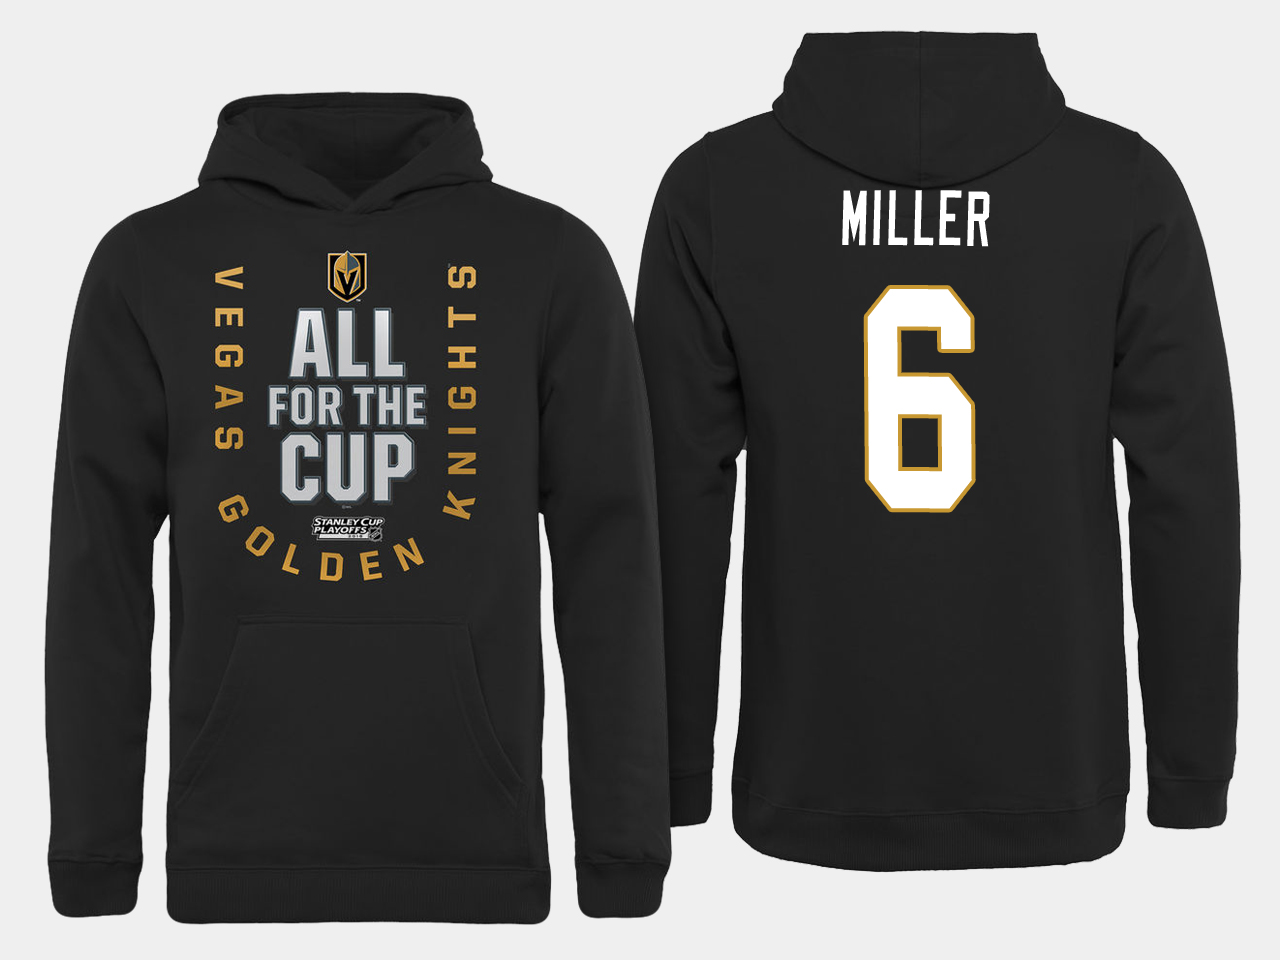 Men NHL Vegas Golden Knights 6 Miller All for the Cup hoodie